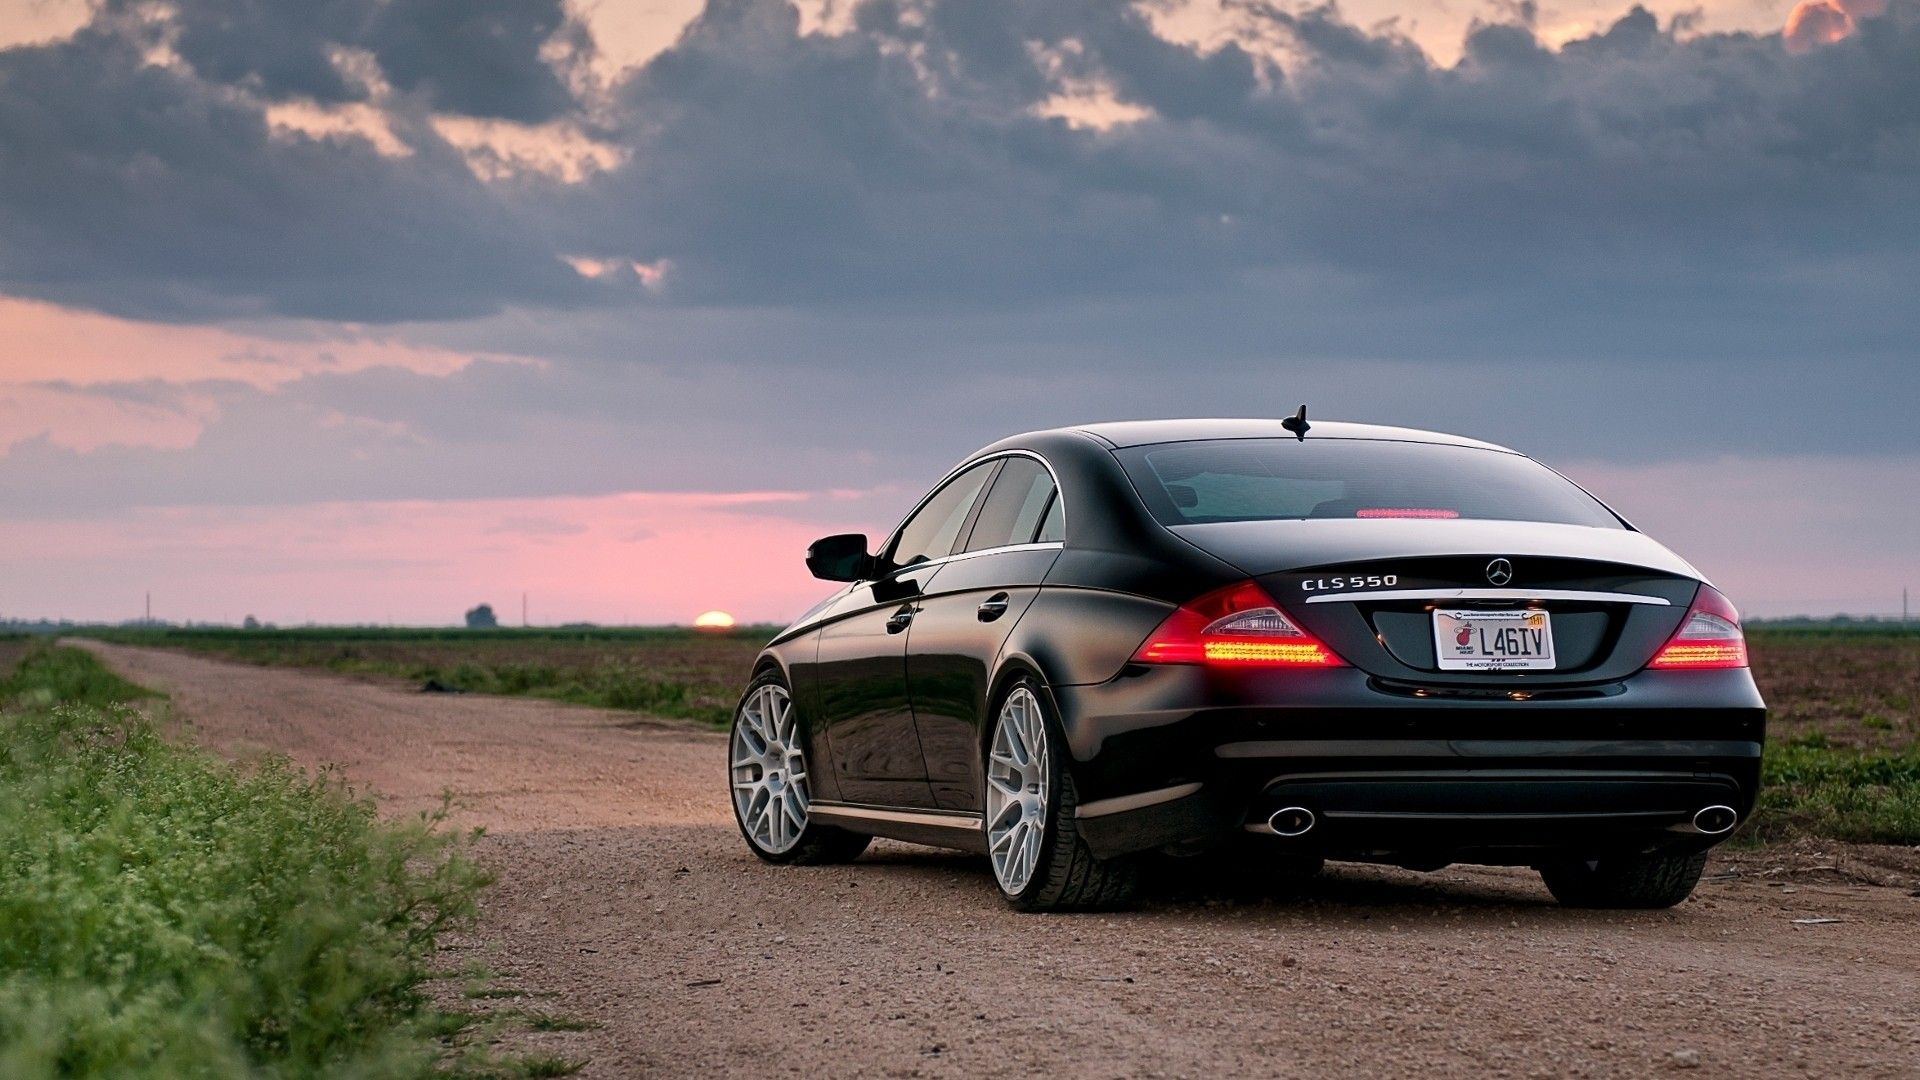 Mercedes Cls 550 Cars Wallpaper 1215717 Wallbasecc Mbforever 2008 Benz Wide Kit